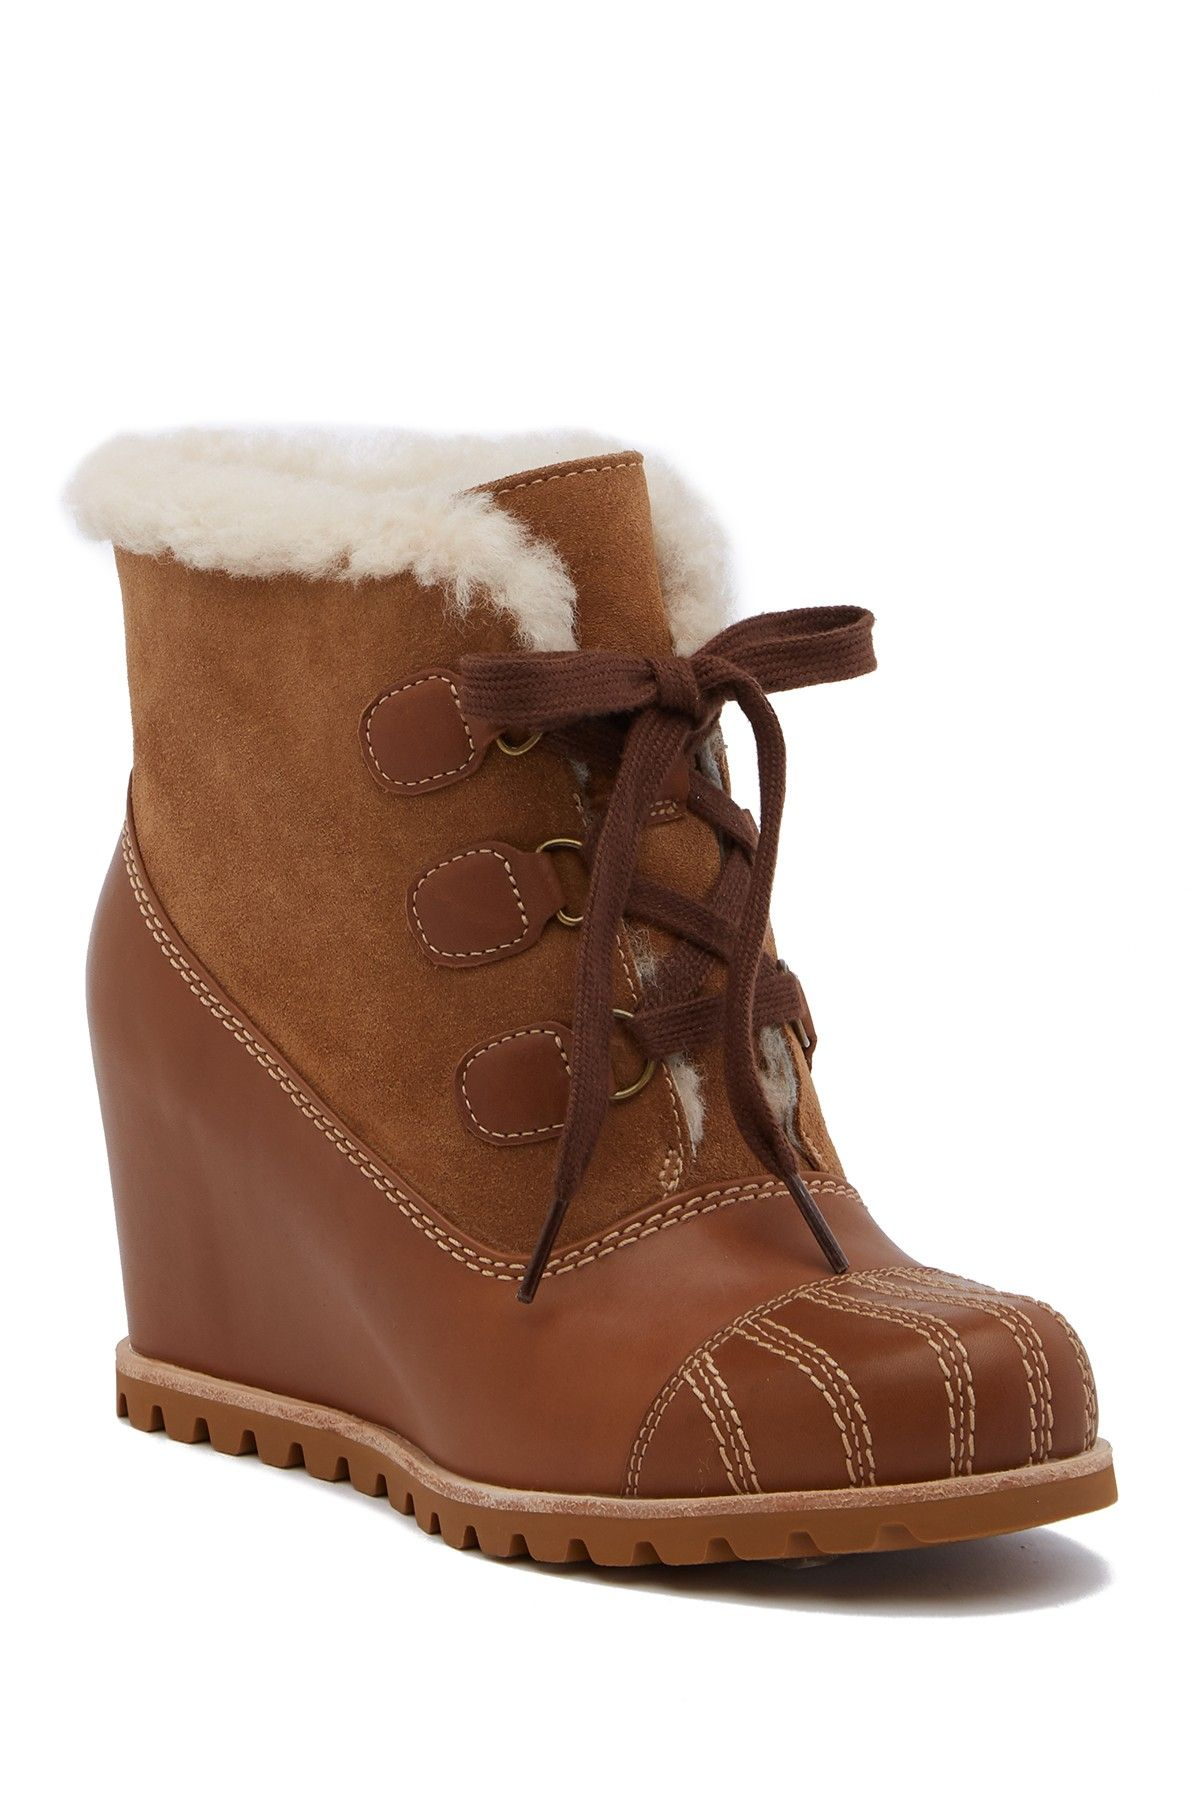 d7da9ca6308 UGG Alasdair Waterproof Wedge Bootie | Products | Uggs, Wedges, Shoes